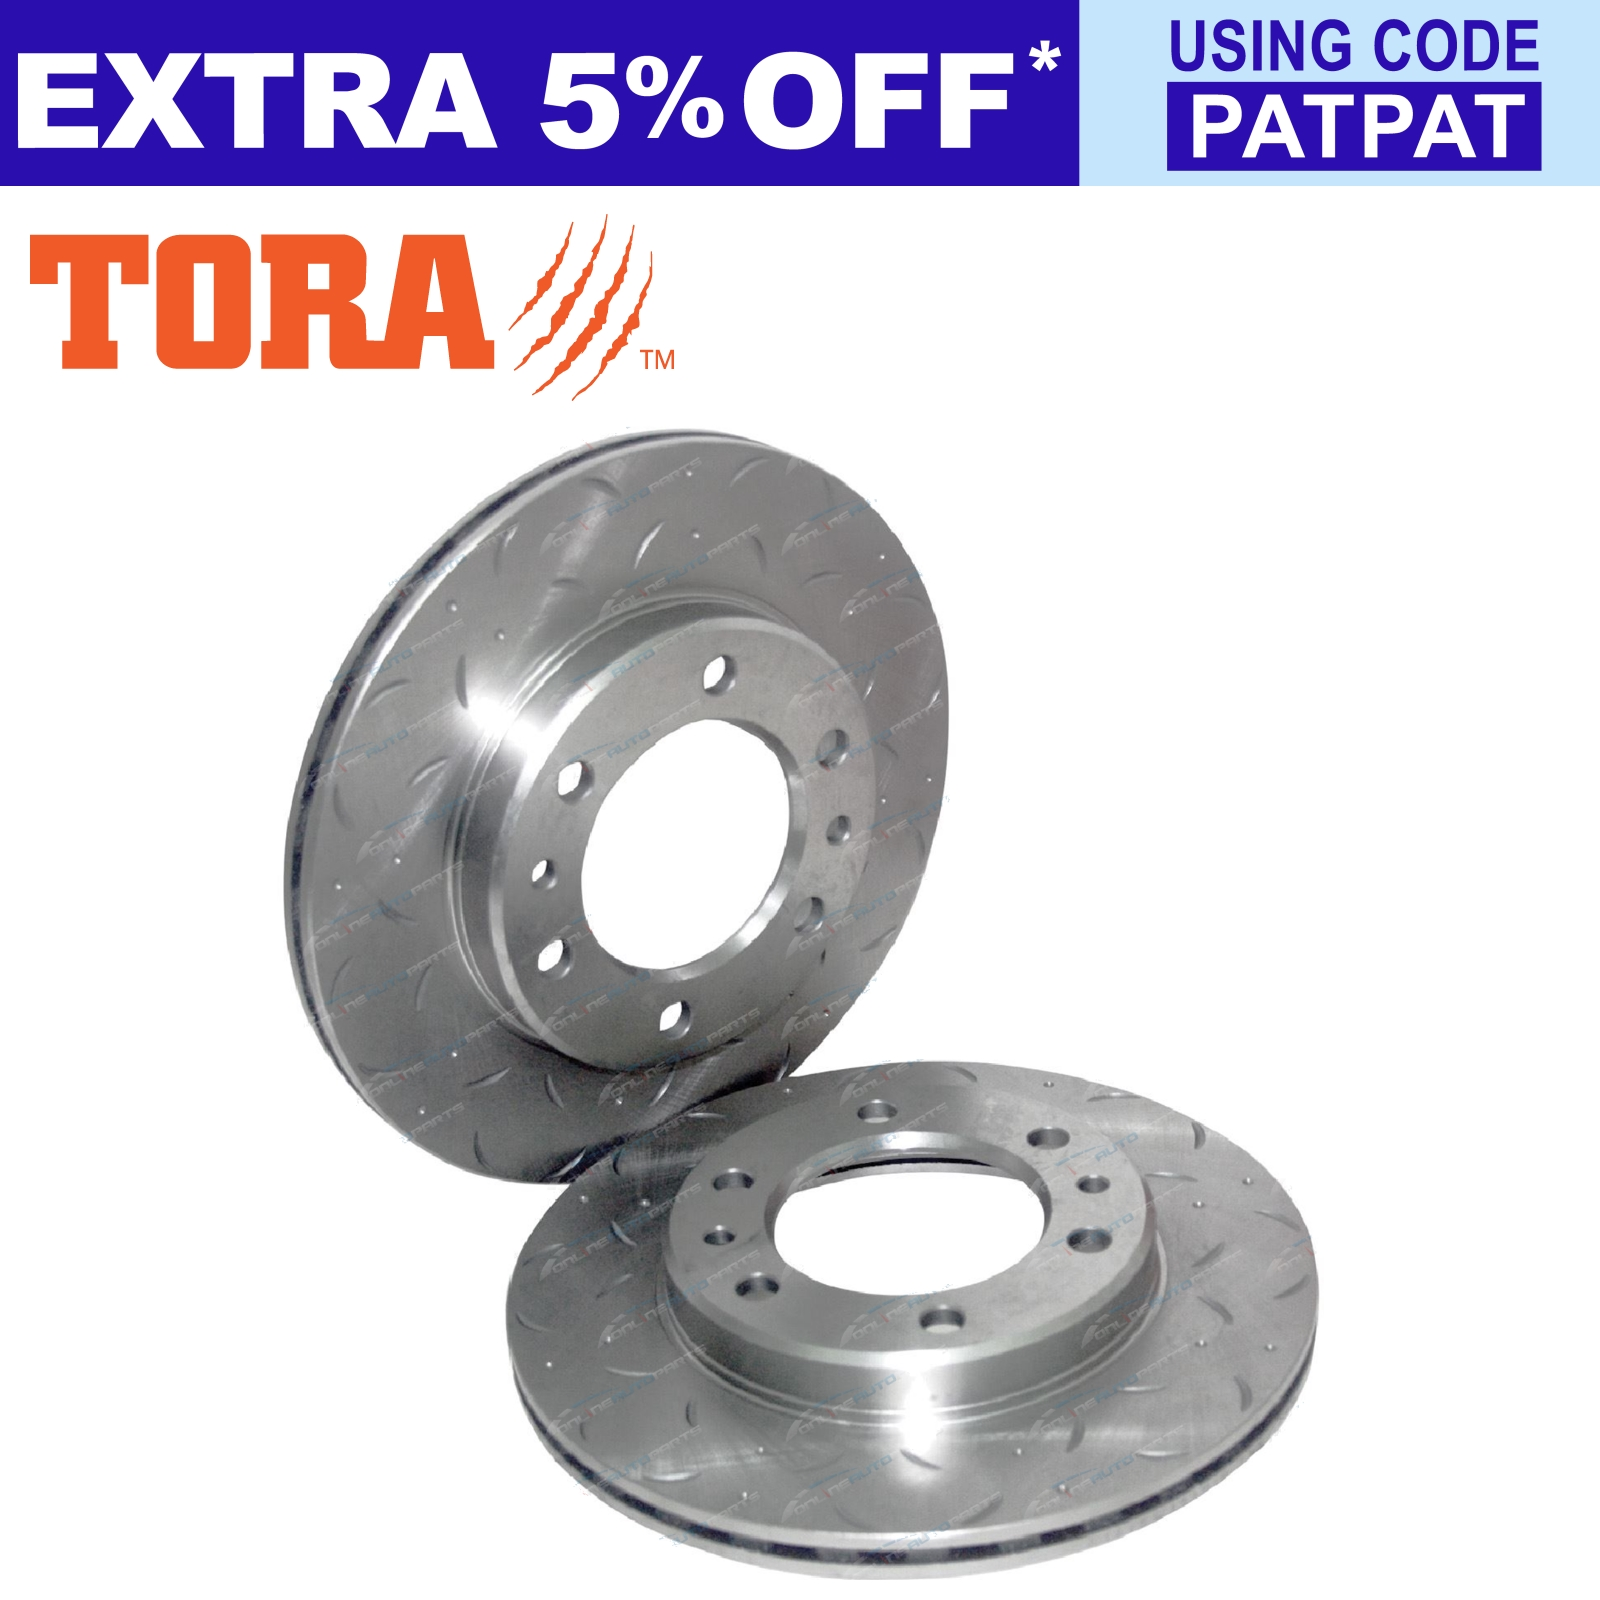 2-Drilled-Slotted-Front-Disc-Brake-Rotors-Hilux-89-99-4x4-LN106-RN105-YN106-Pair